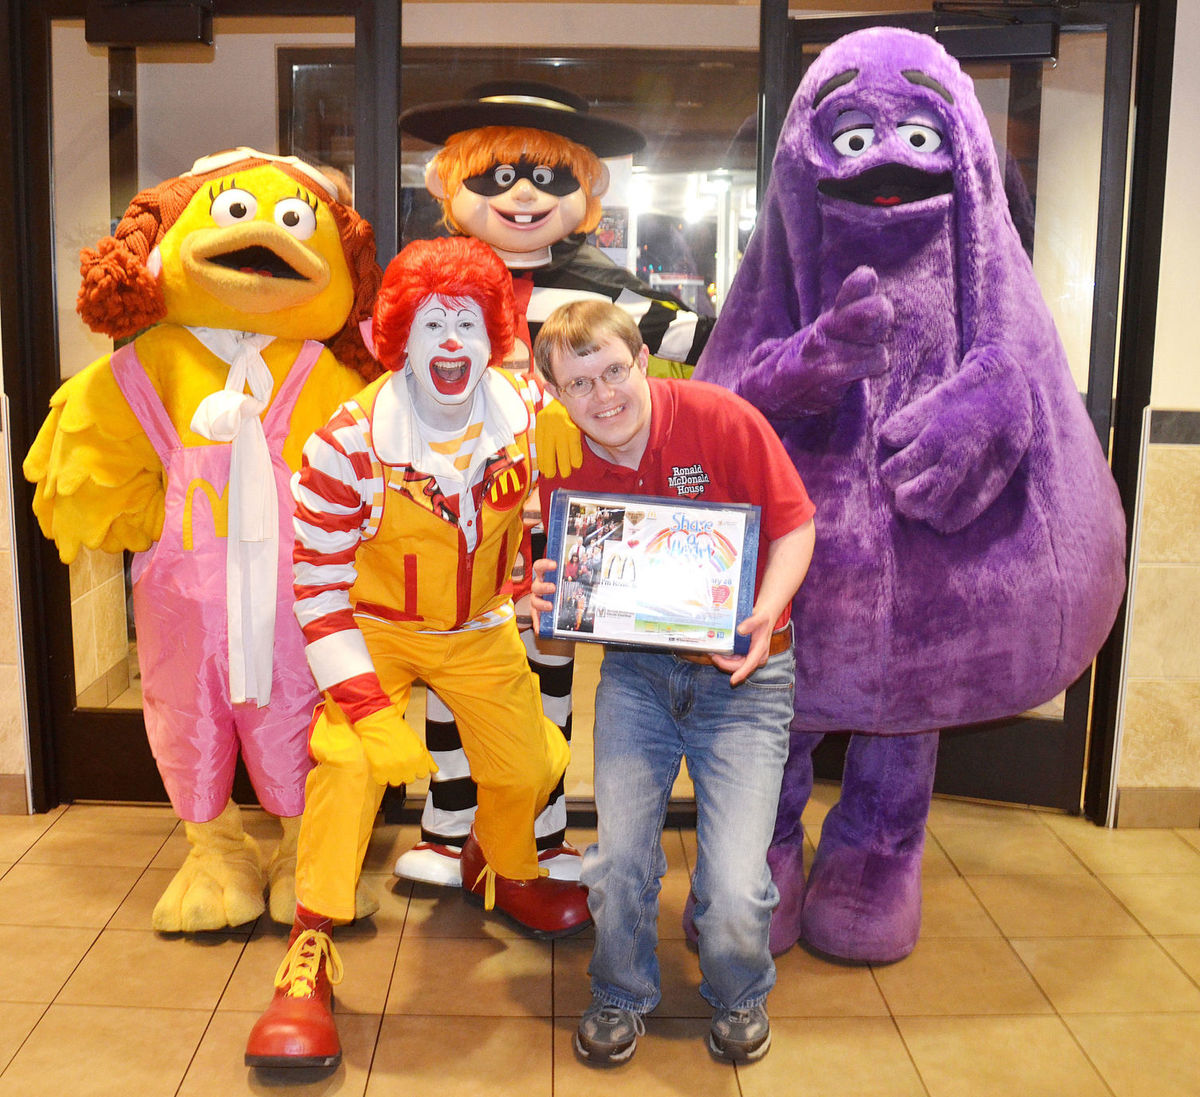 TJ Slocum posing with some of the McDonald's characters on a past McTJ Night.